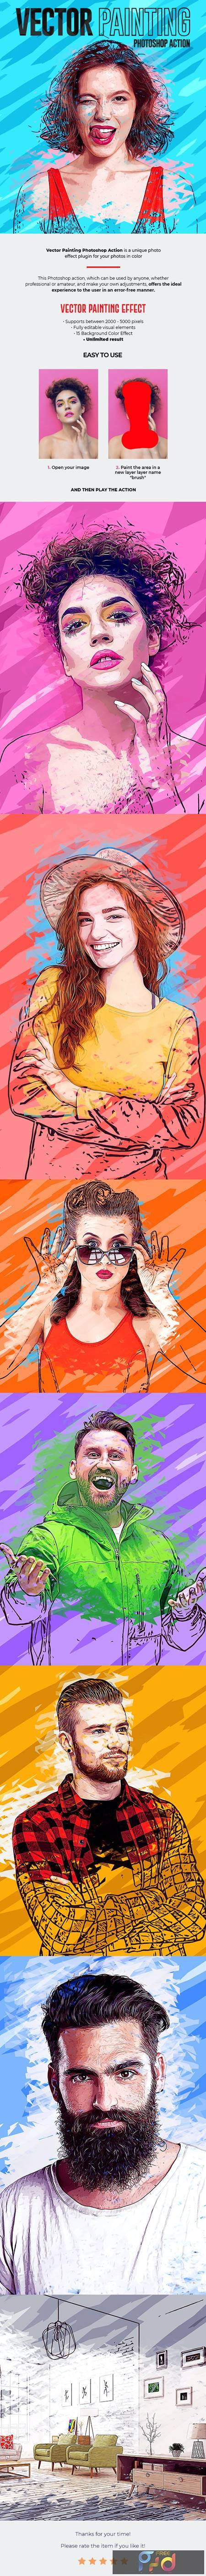 Vector Painting Effect Photoshop Action 26992554 1